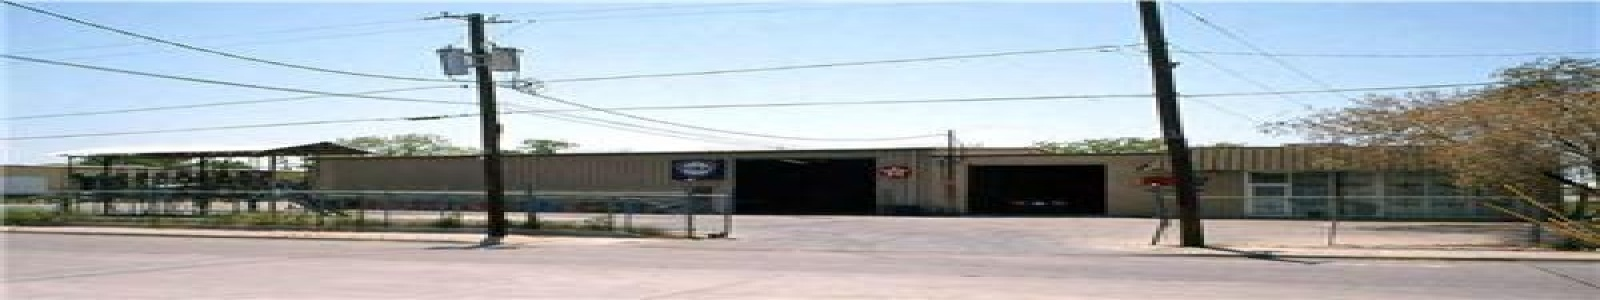 4847 Alexander Ln.,Dallas,Texas 75247,Commercial Property,4847 Alexander Ln.,1009